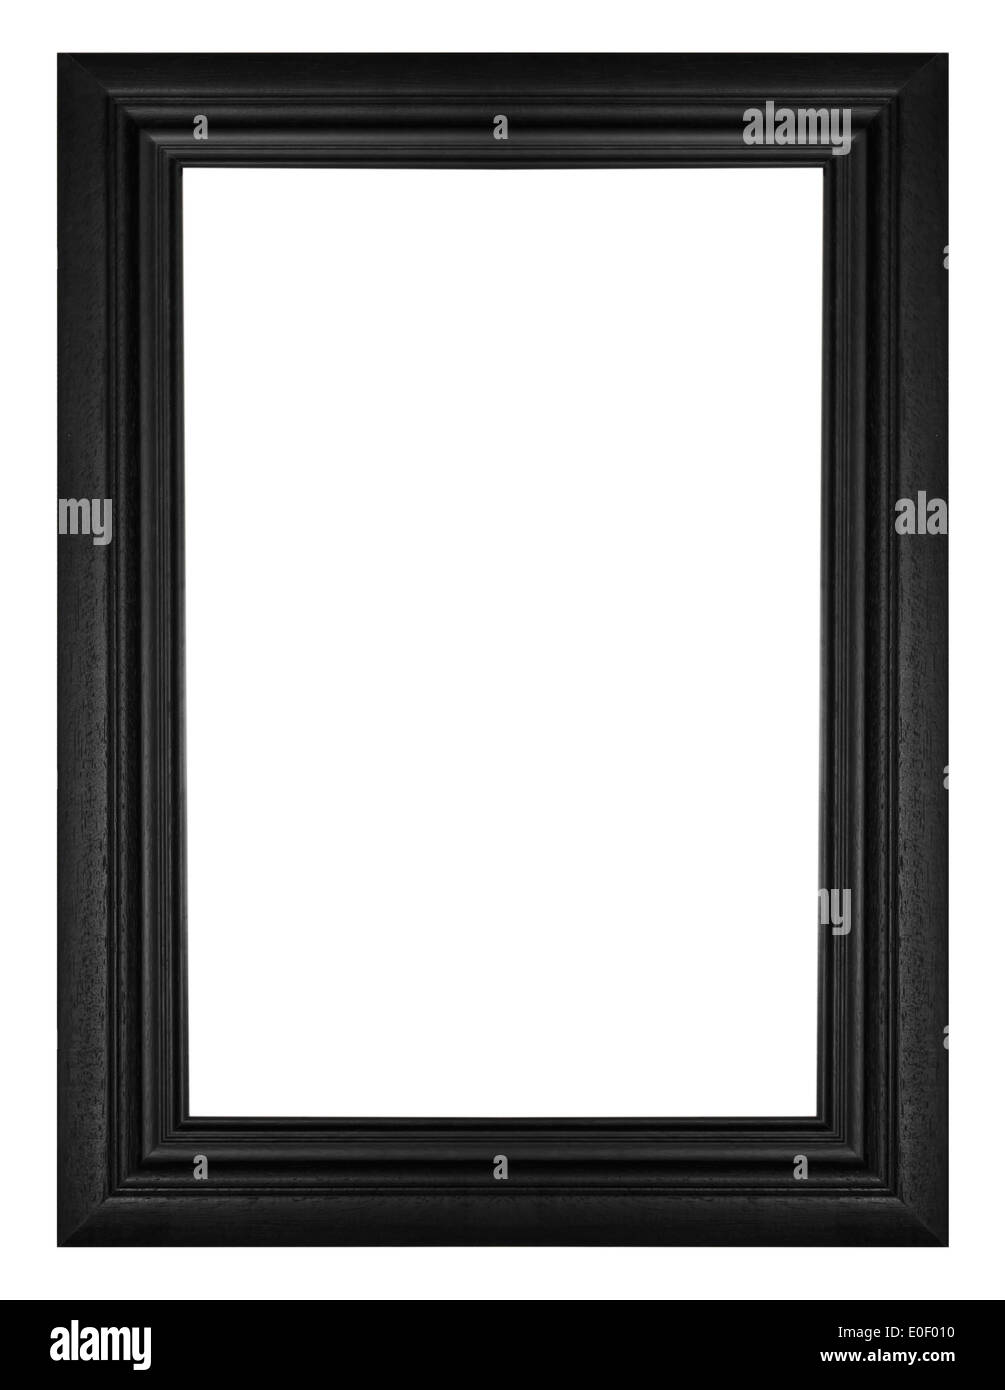 Picture frame black wood frame in white background. - Stock Image